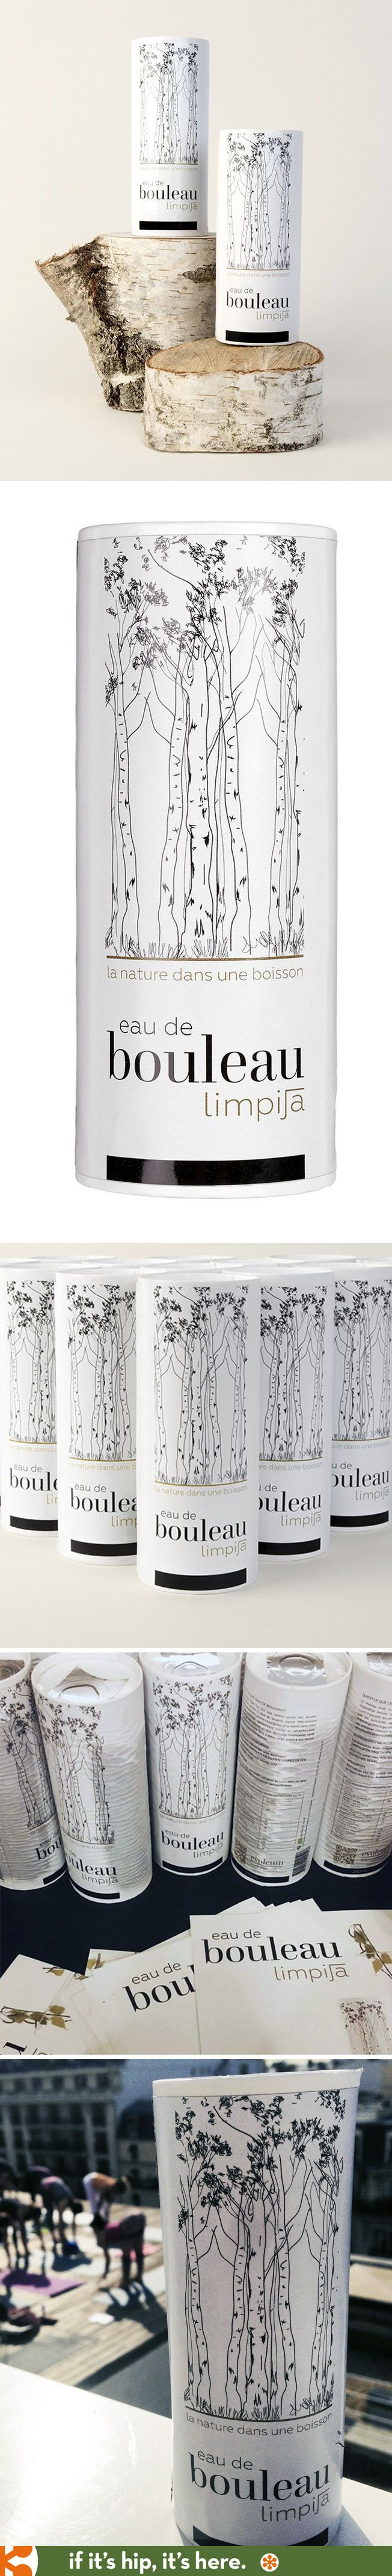 packaging Limpija Eau de Bouleau (Birch Water from Finland) by Evoleum